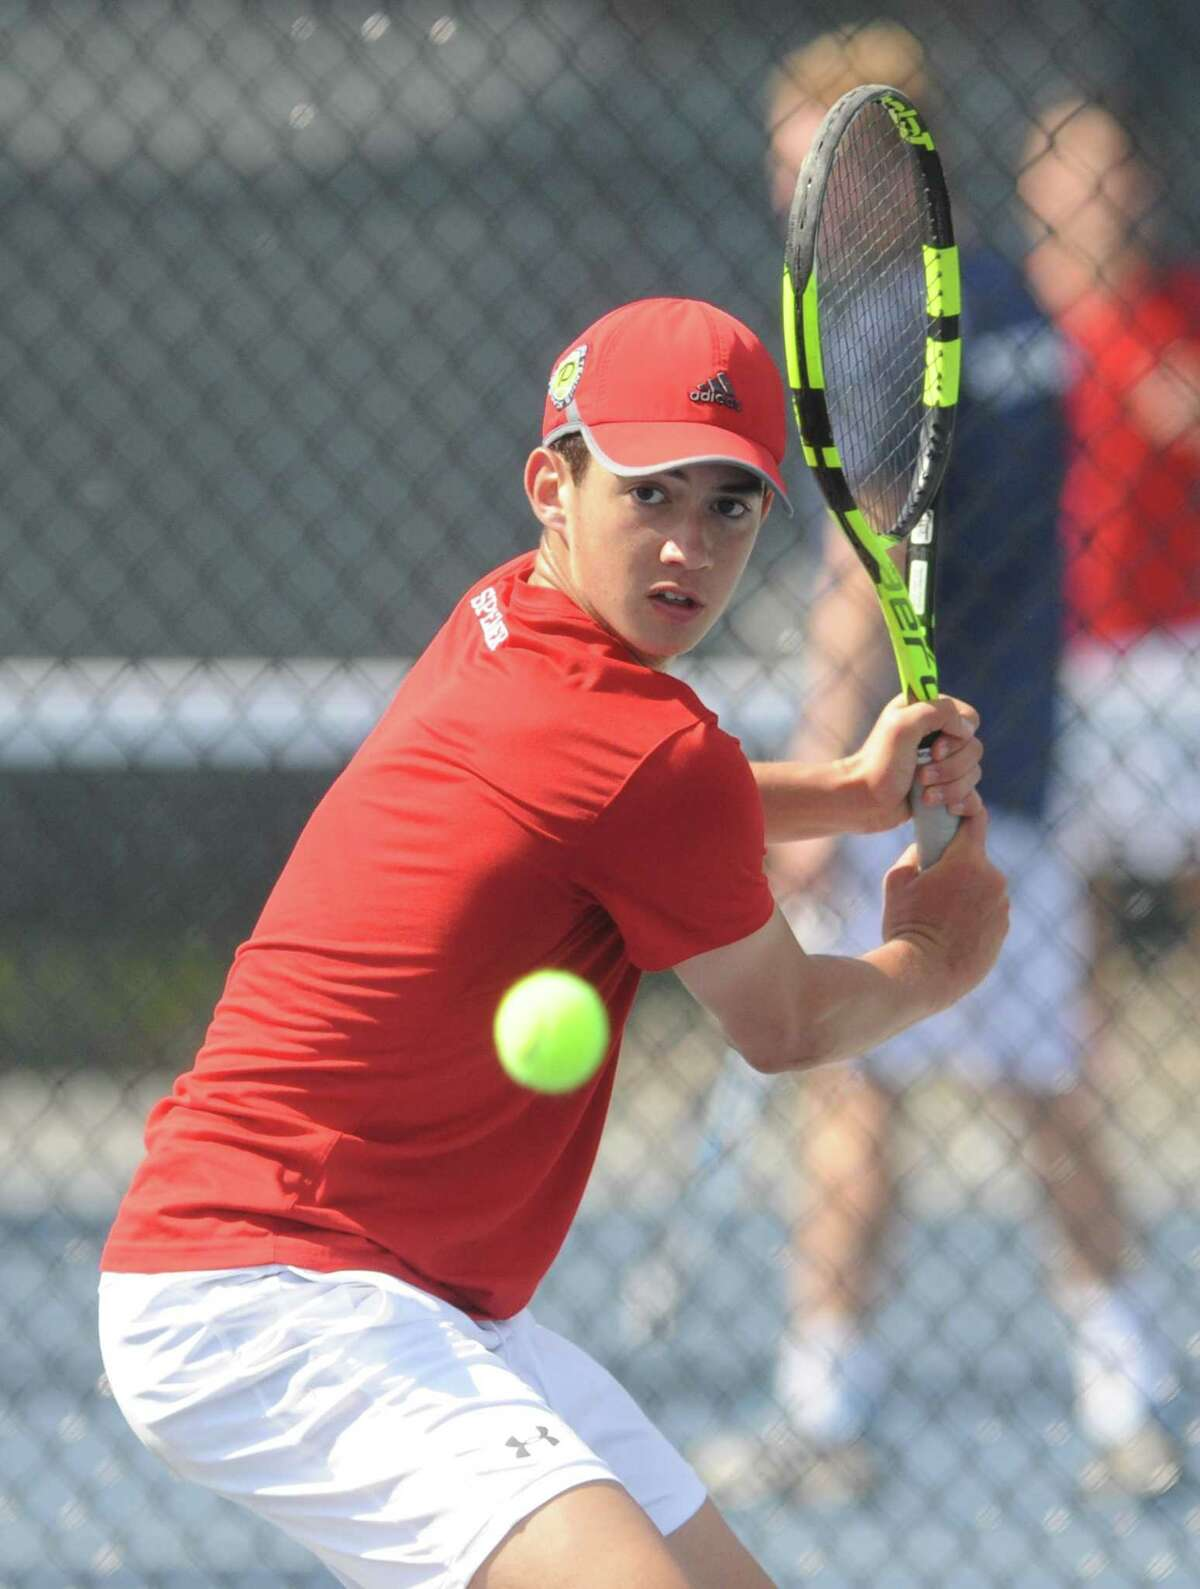 Justin Speaker competes at No. 1 singles for Greenwich.